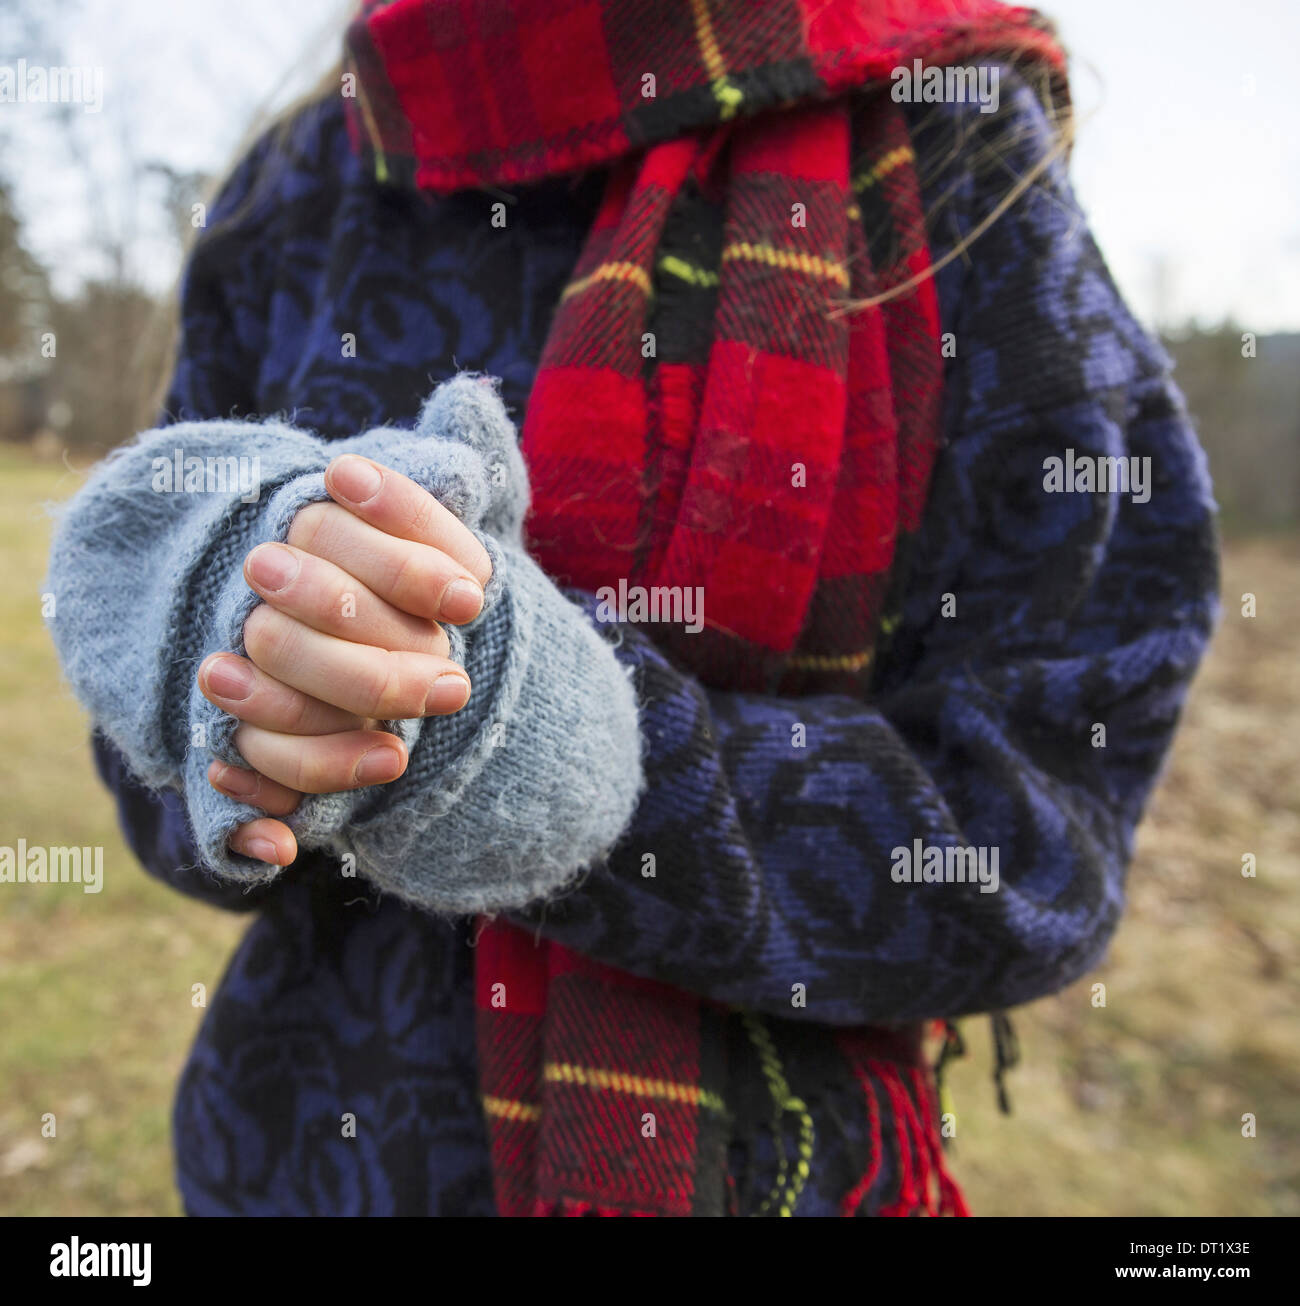 A woman in a tartan scarf and knitted woollen mitts keeping her hands warm in cold weather - Stock Image